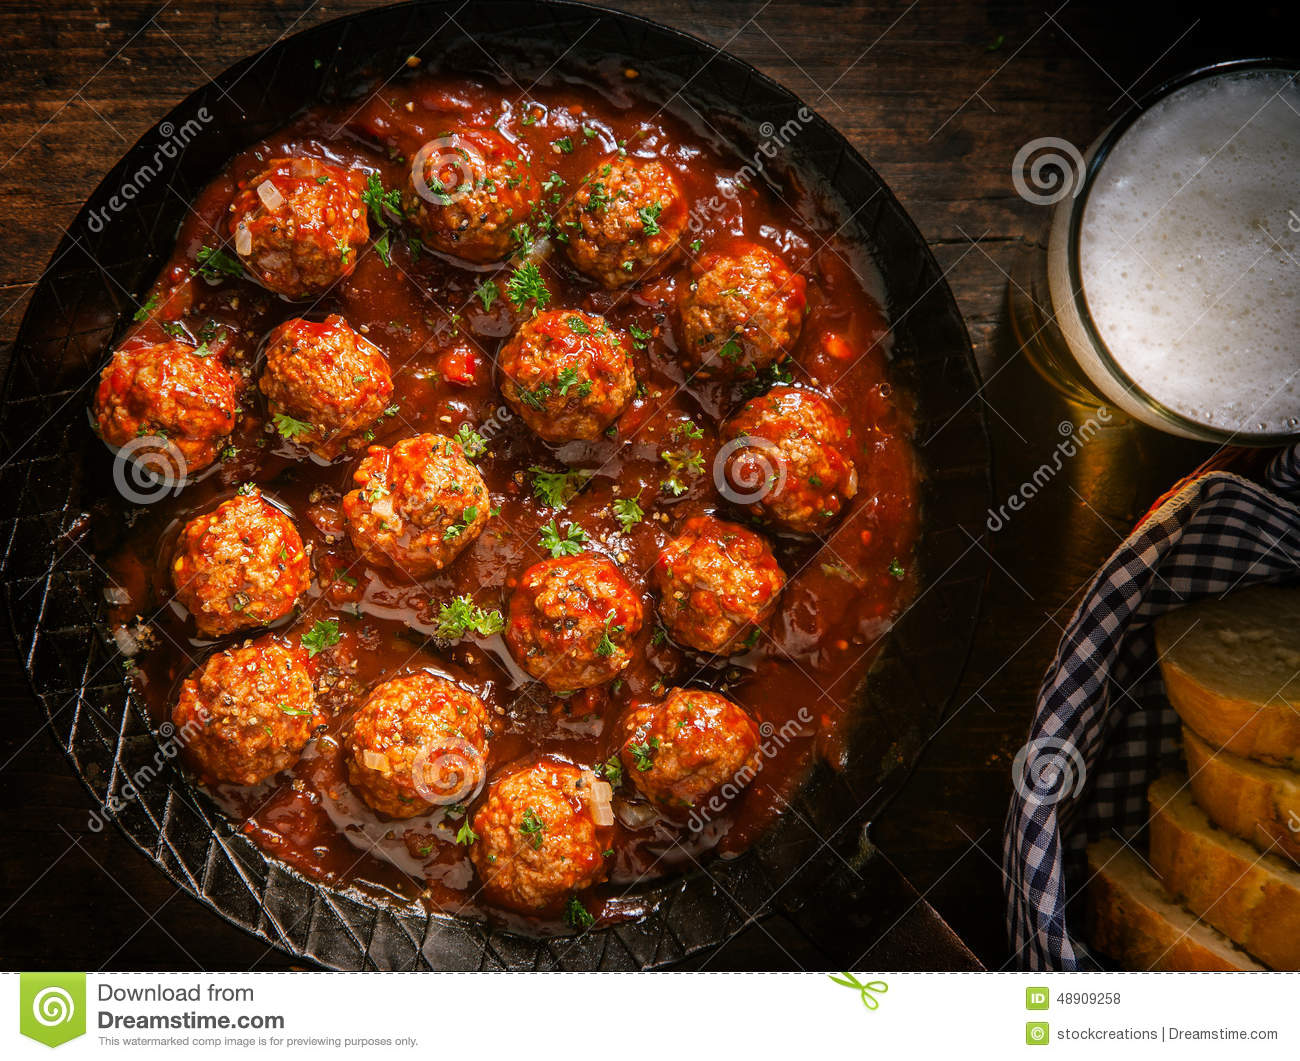 Succulent beef meatballs in a spicy sauce